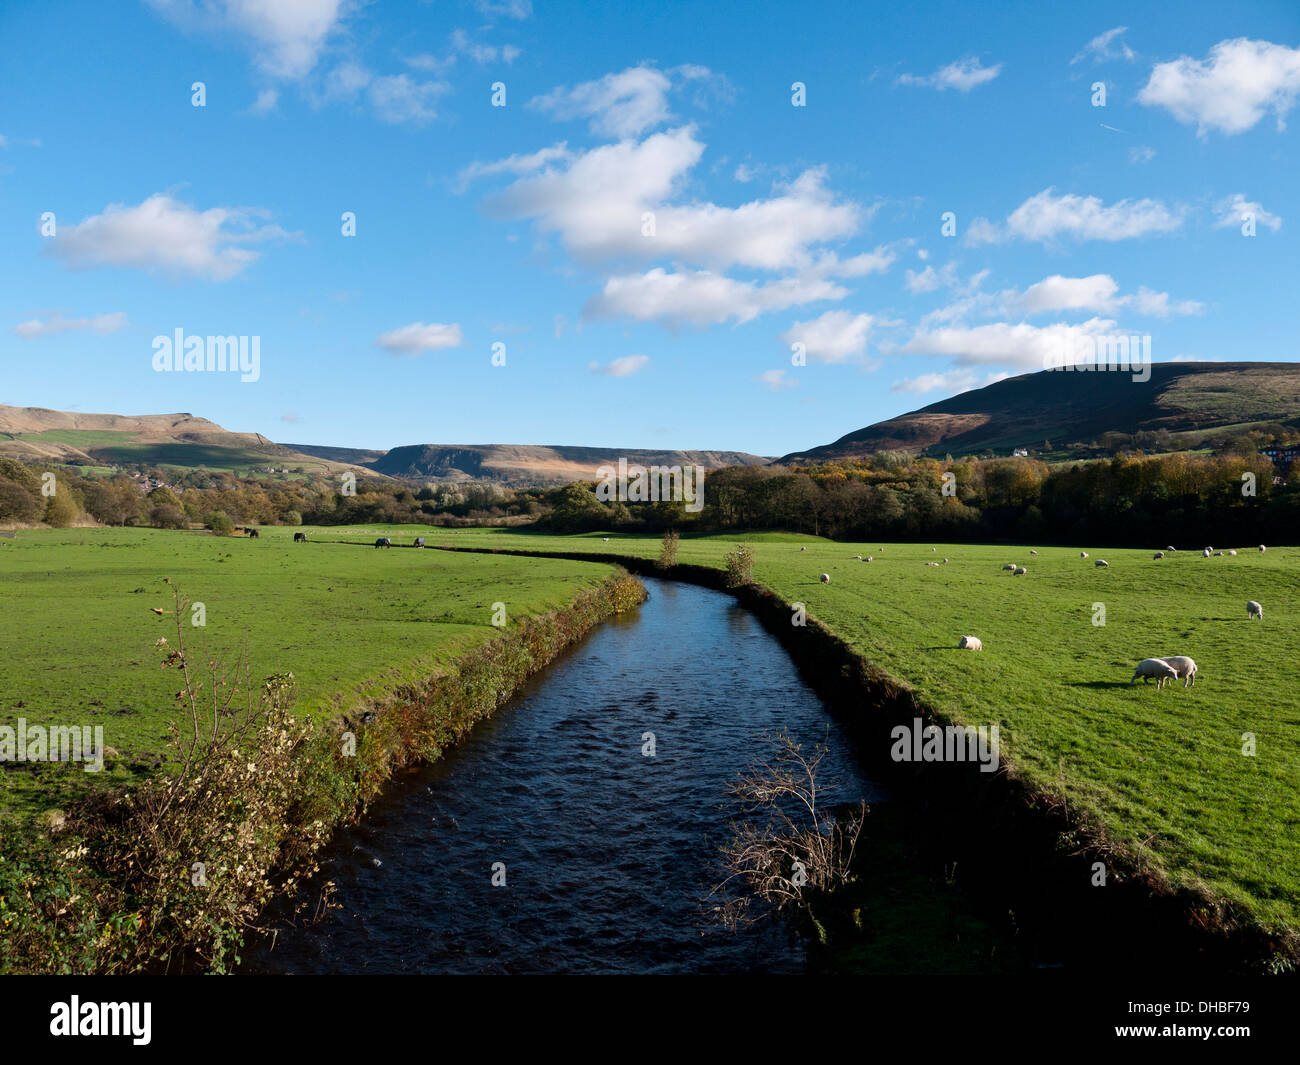 River Tame looking towards Greenfield and moors, Greenfield,Saddleworth,Oldham,UK. - Stock Image